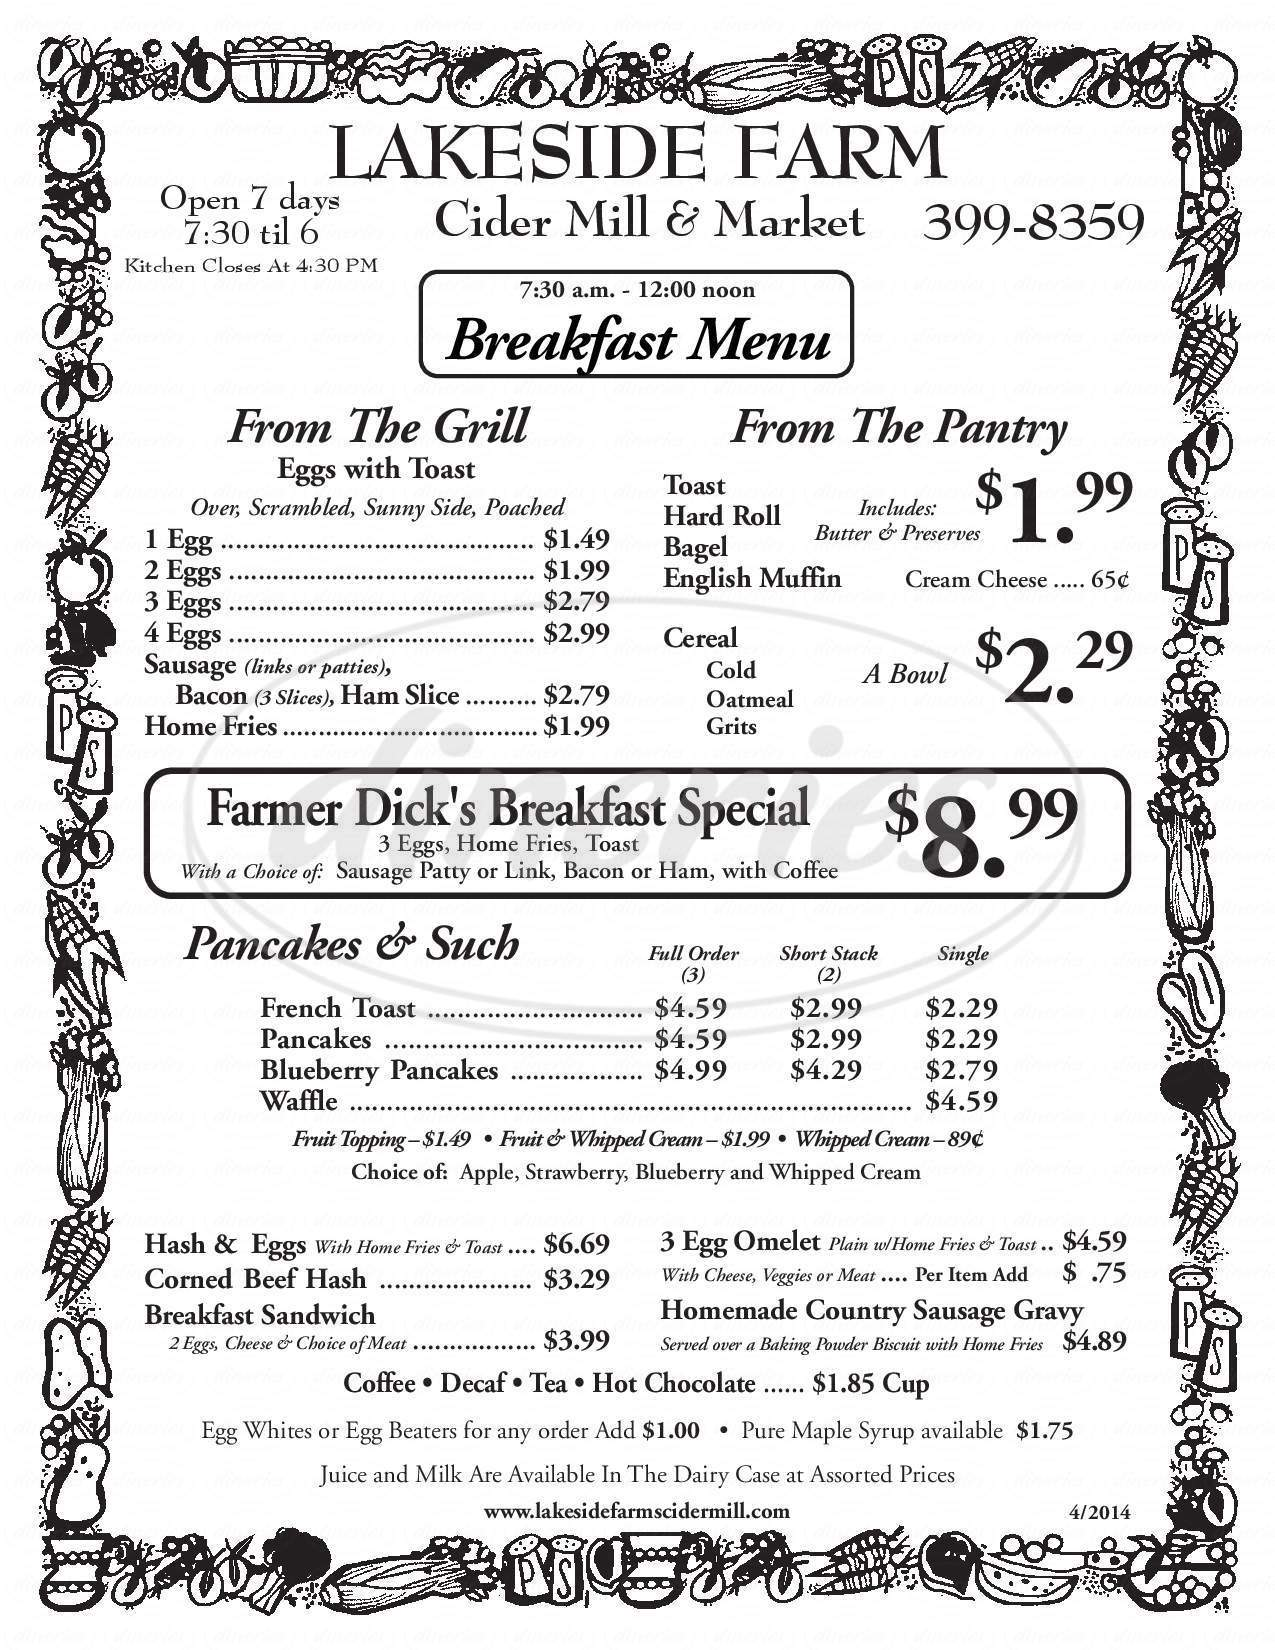 menu for Lakeside Farm